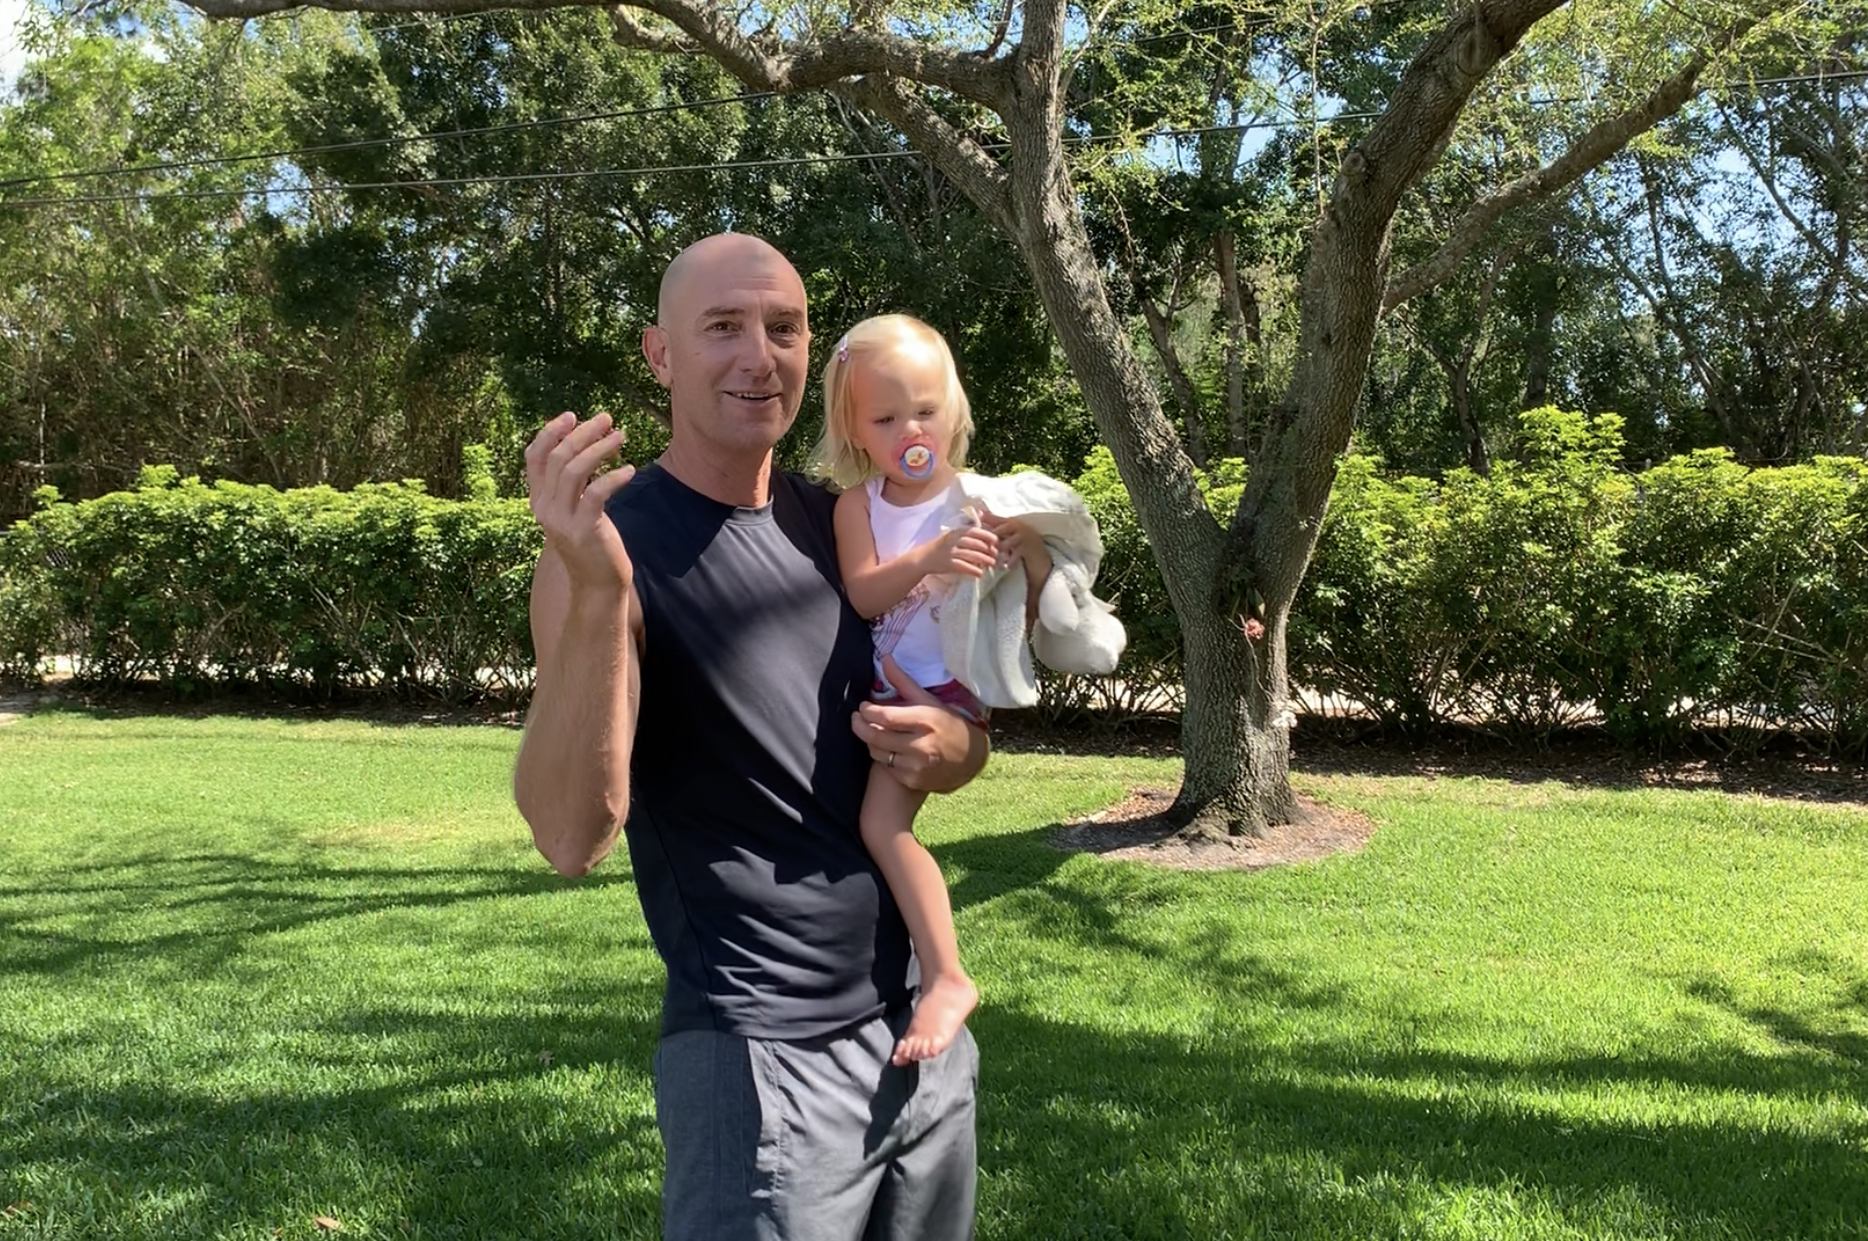 Daddy Daughter Fitness